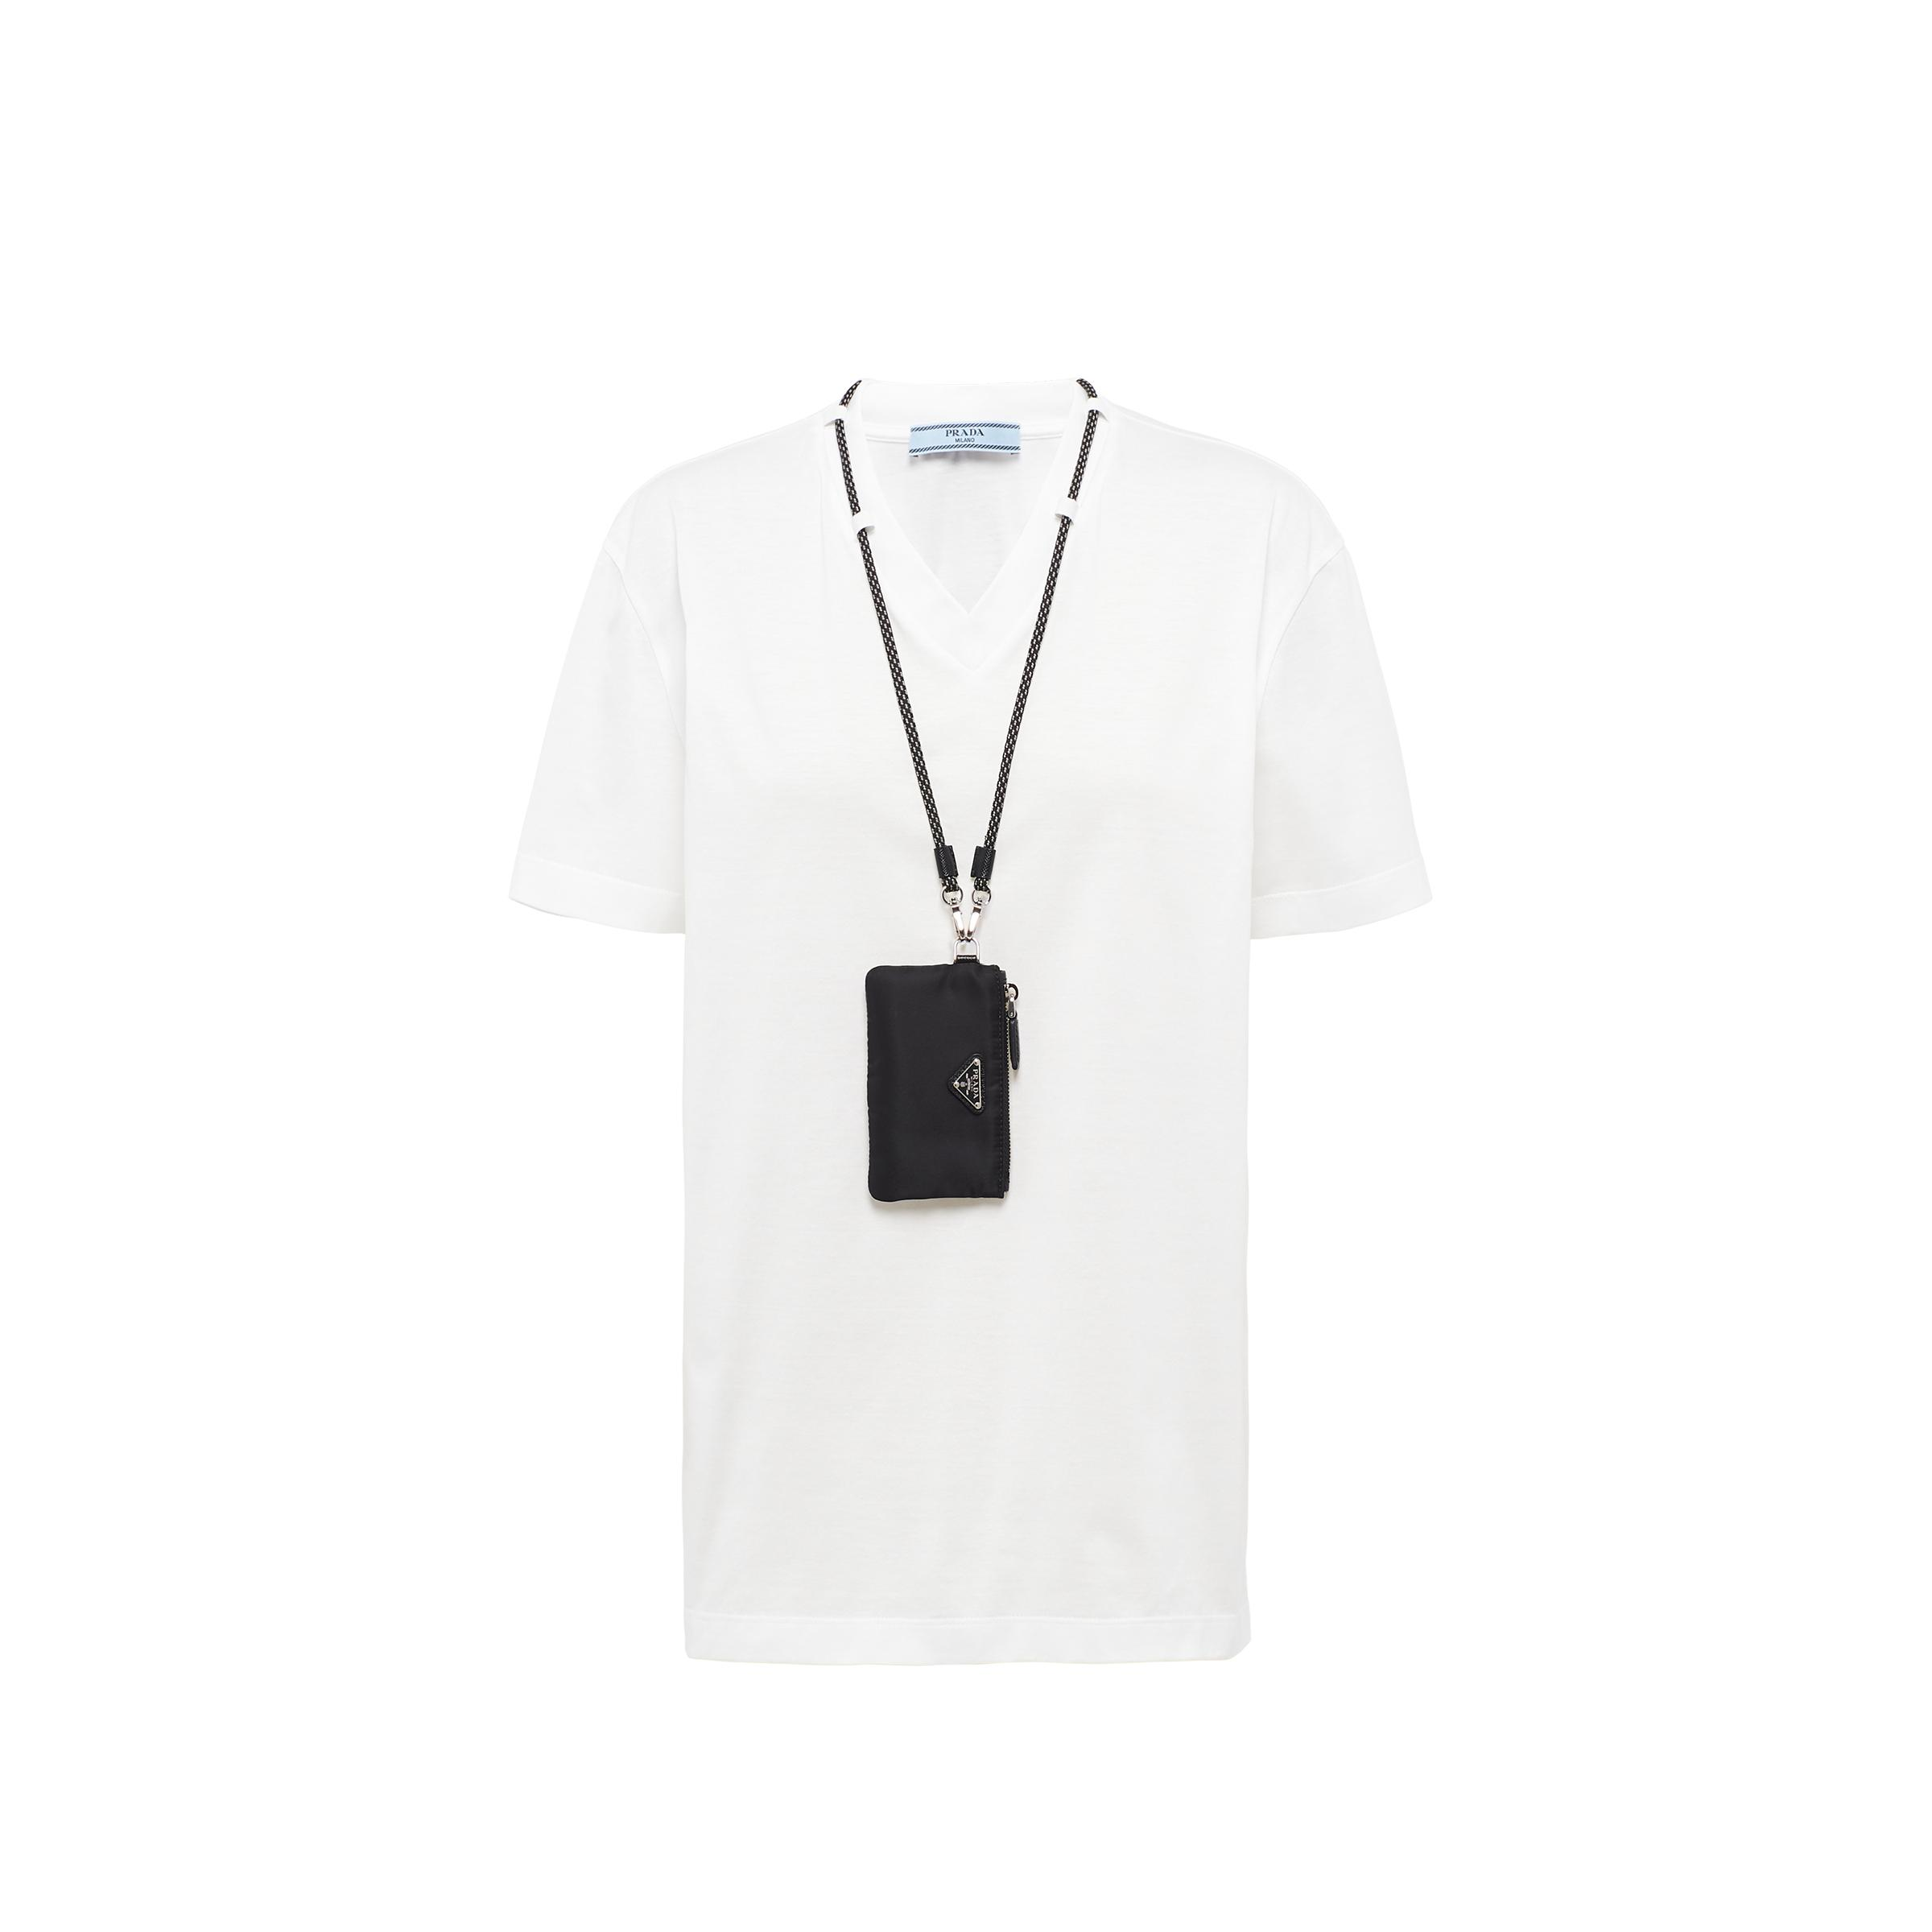 V-neck Jersey T-shirt With Pouch Women White/black